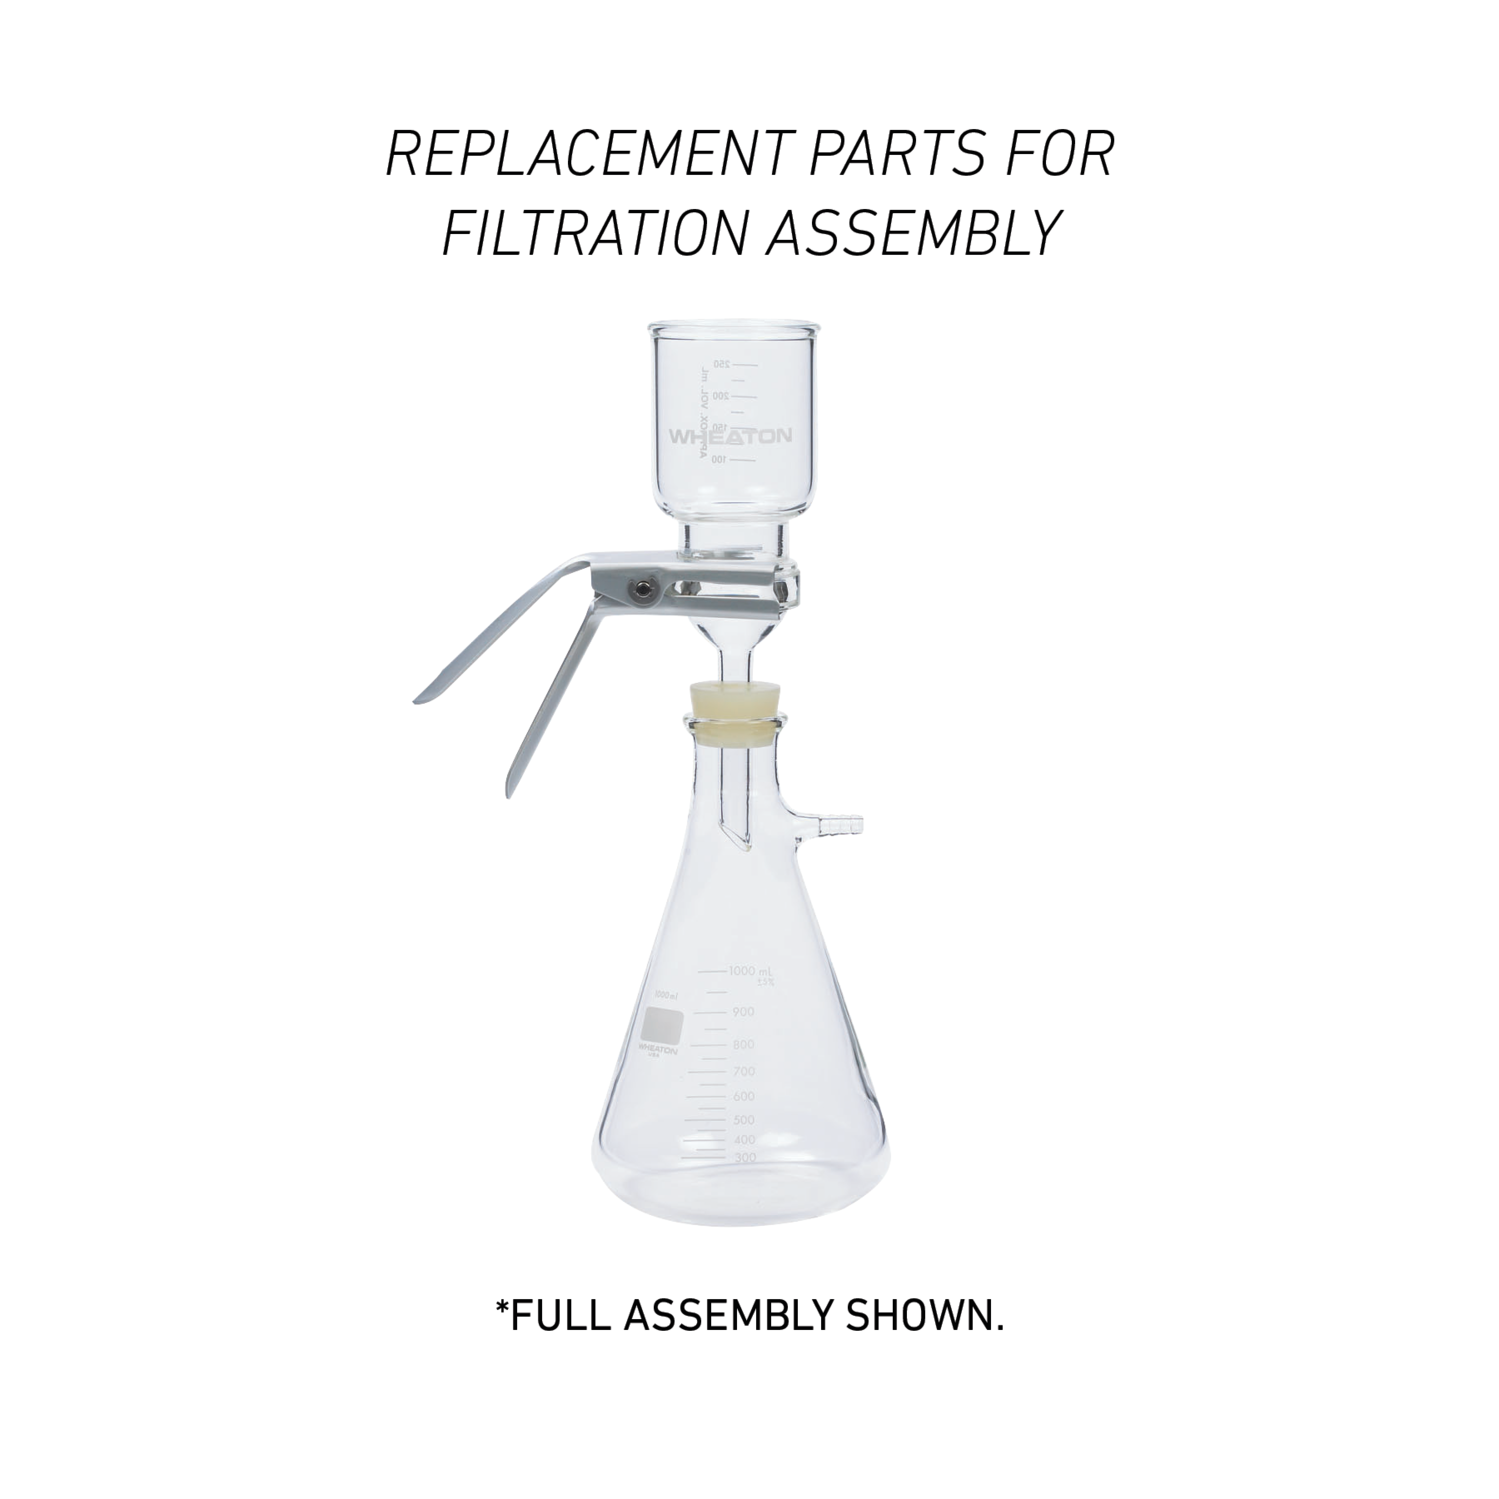 WHEATON® 47mm Filtration Assembly Replacement Part, Glass Funnel, 47mm, 300mL